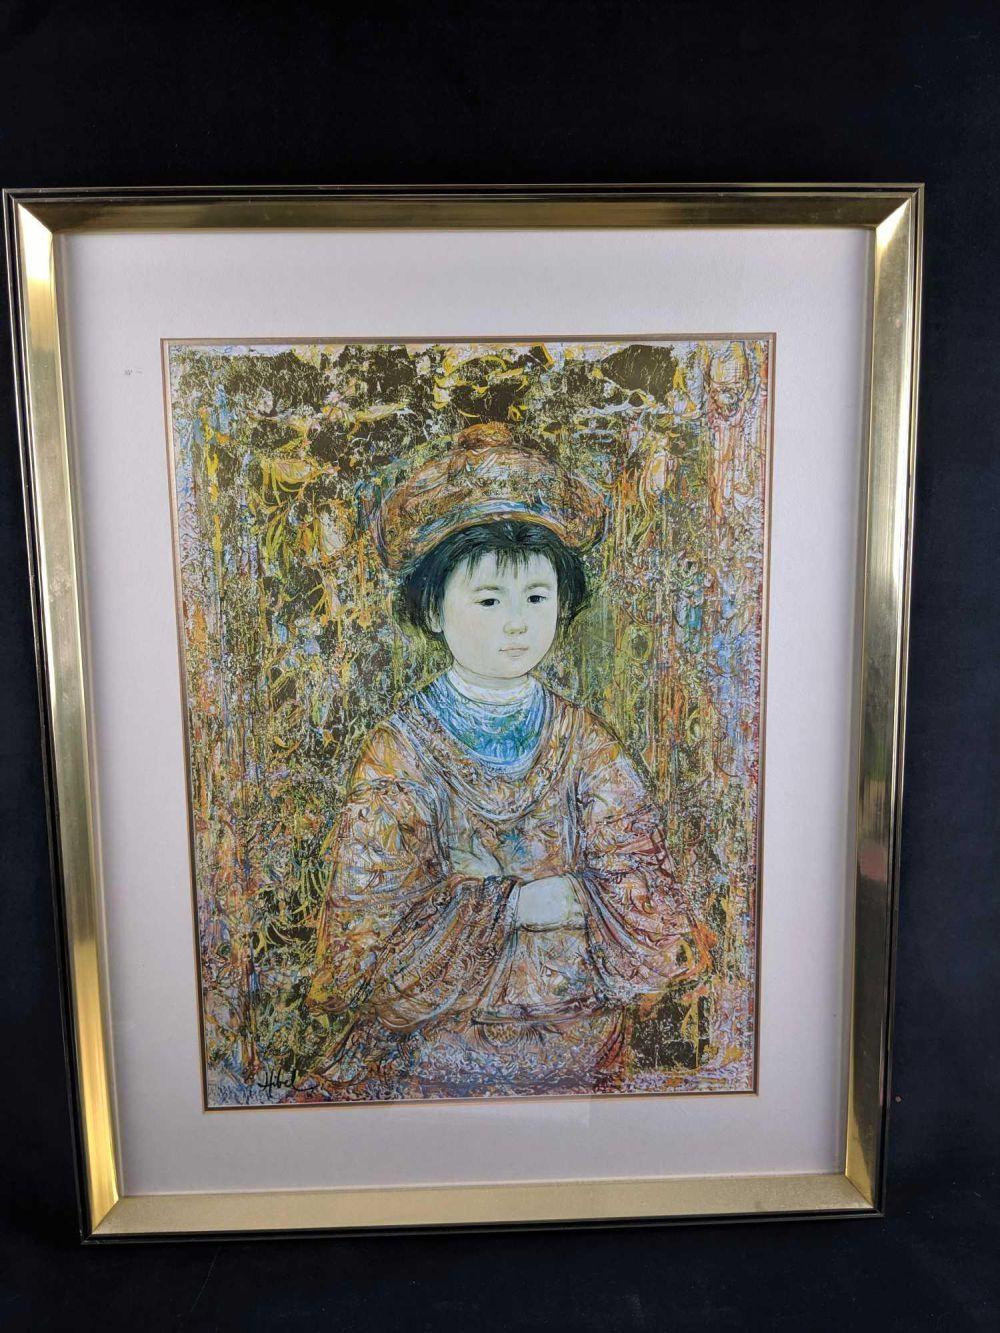 Lot 102: Sold Out Michio by Edna Hibel Exclusive Framed Print Edition of 1000